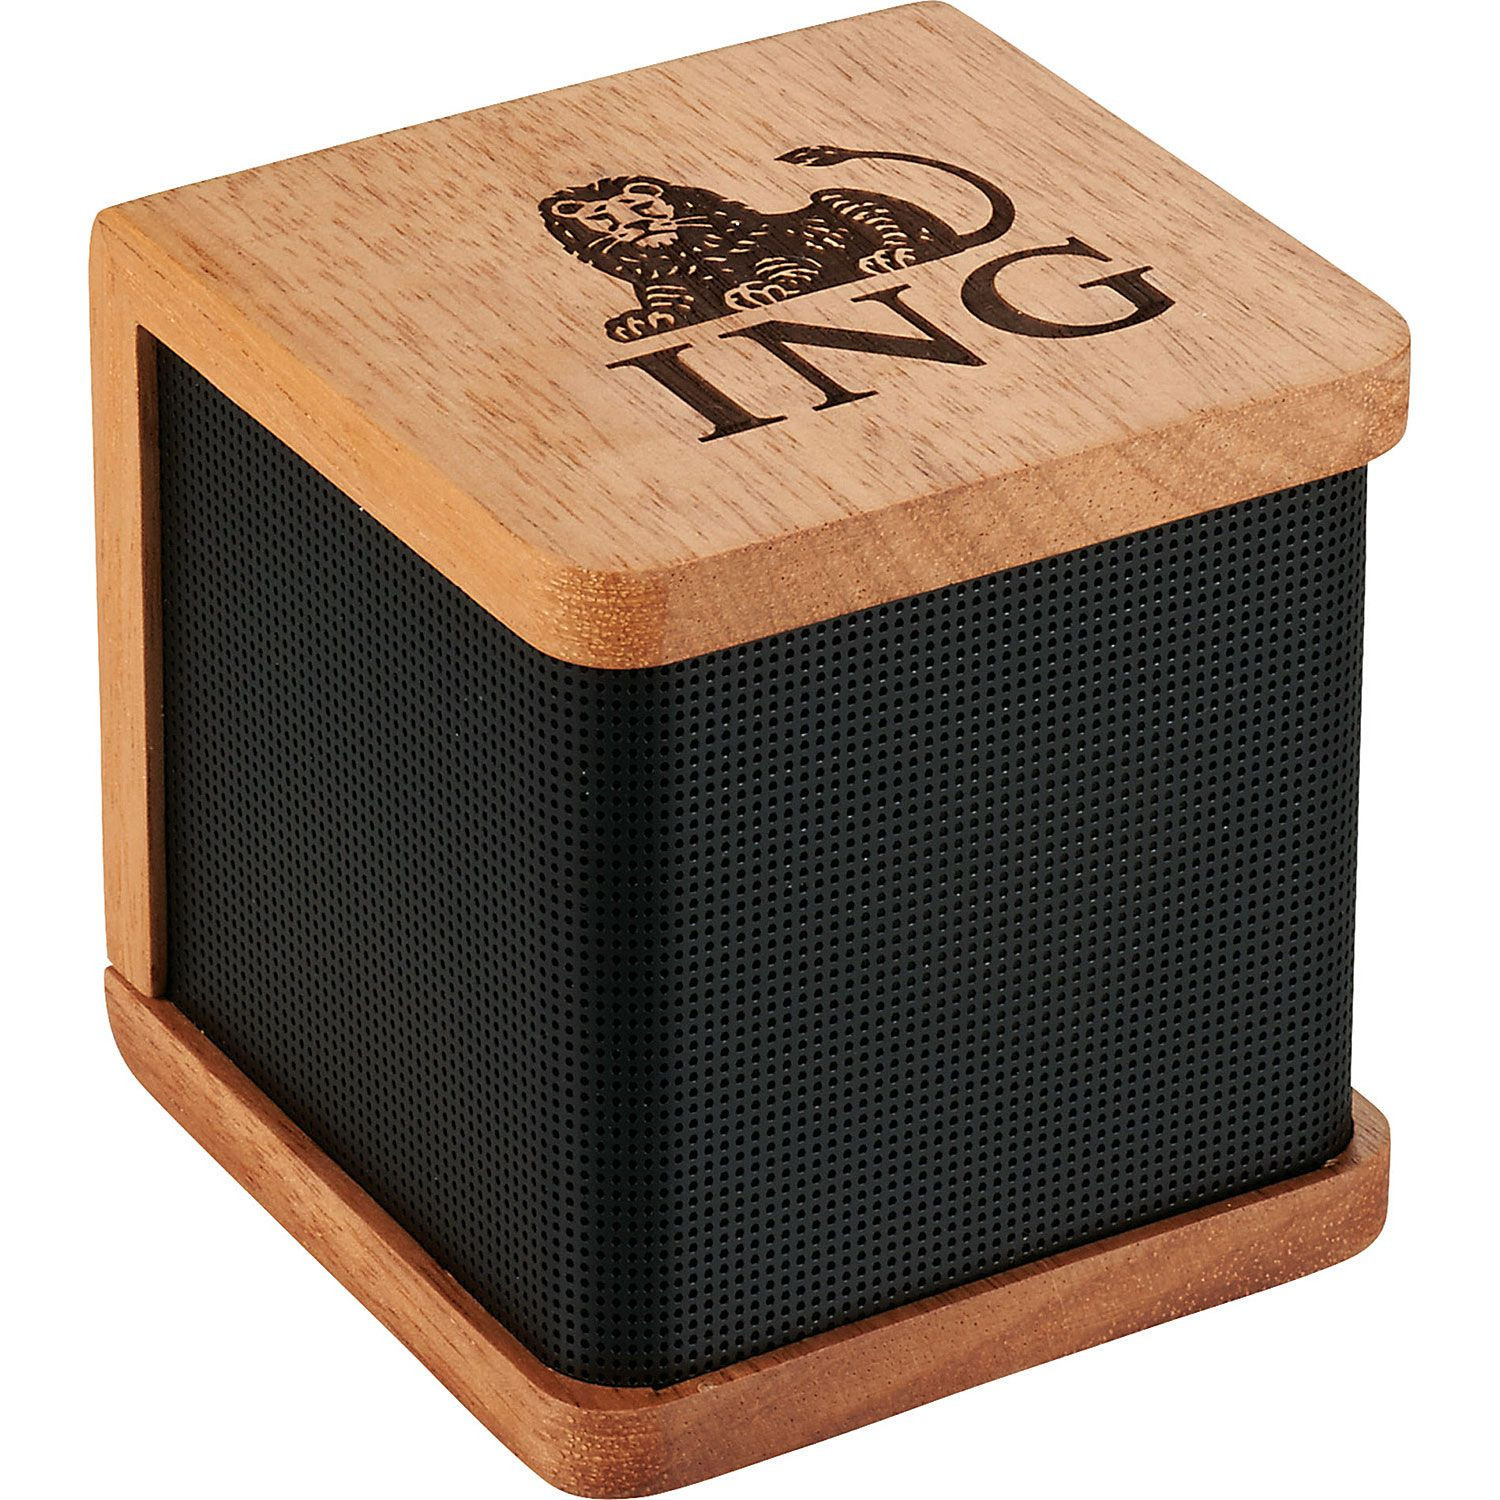 Best ideas about Corporate Gift Ideas . Save or Pin Wood Bluetooth Speaker Gorilla Marketing Promotional Now.